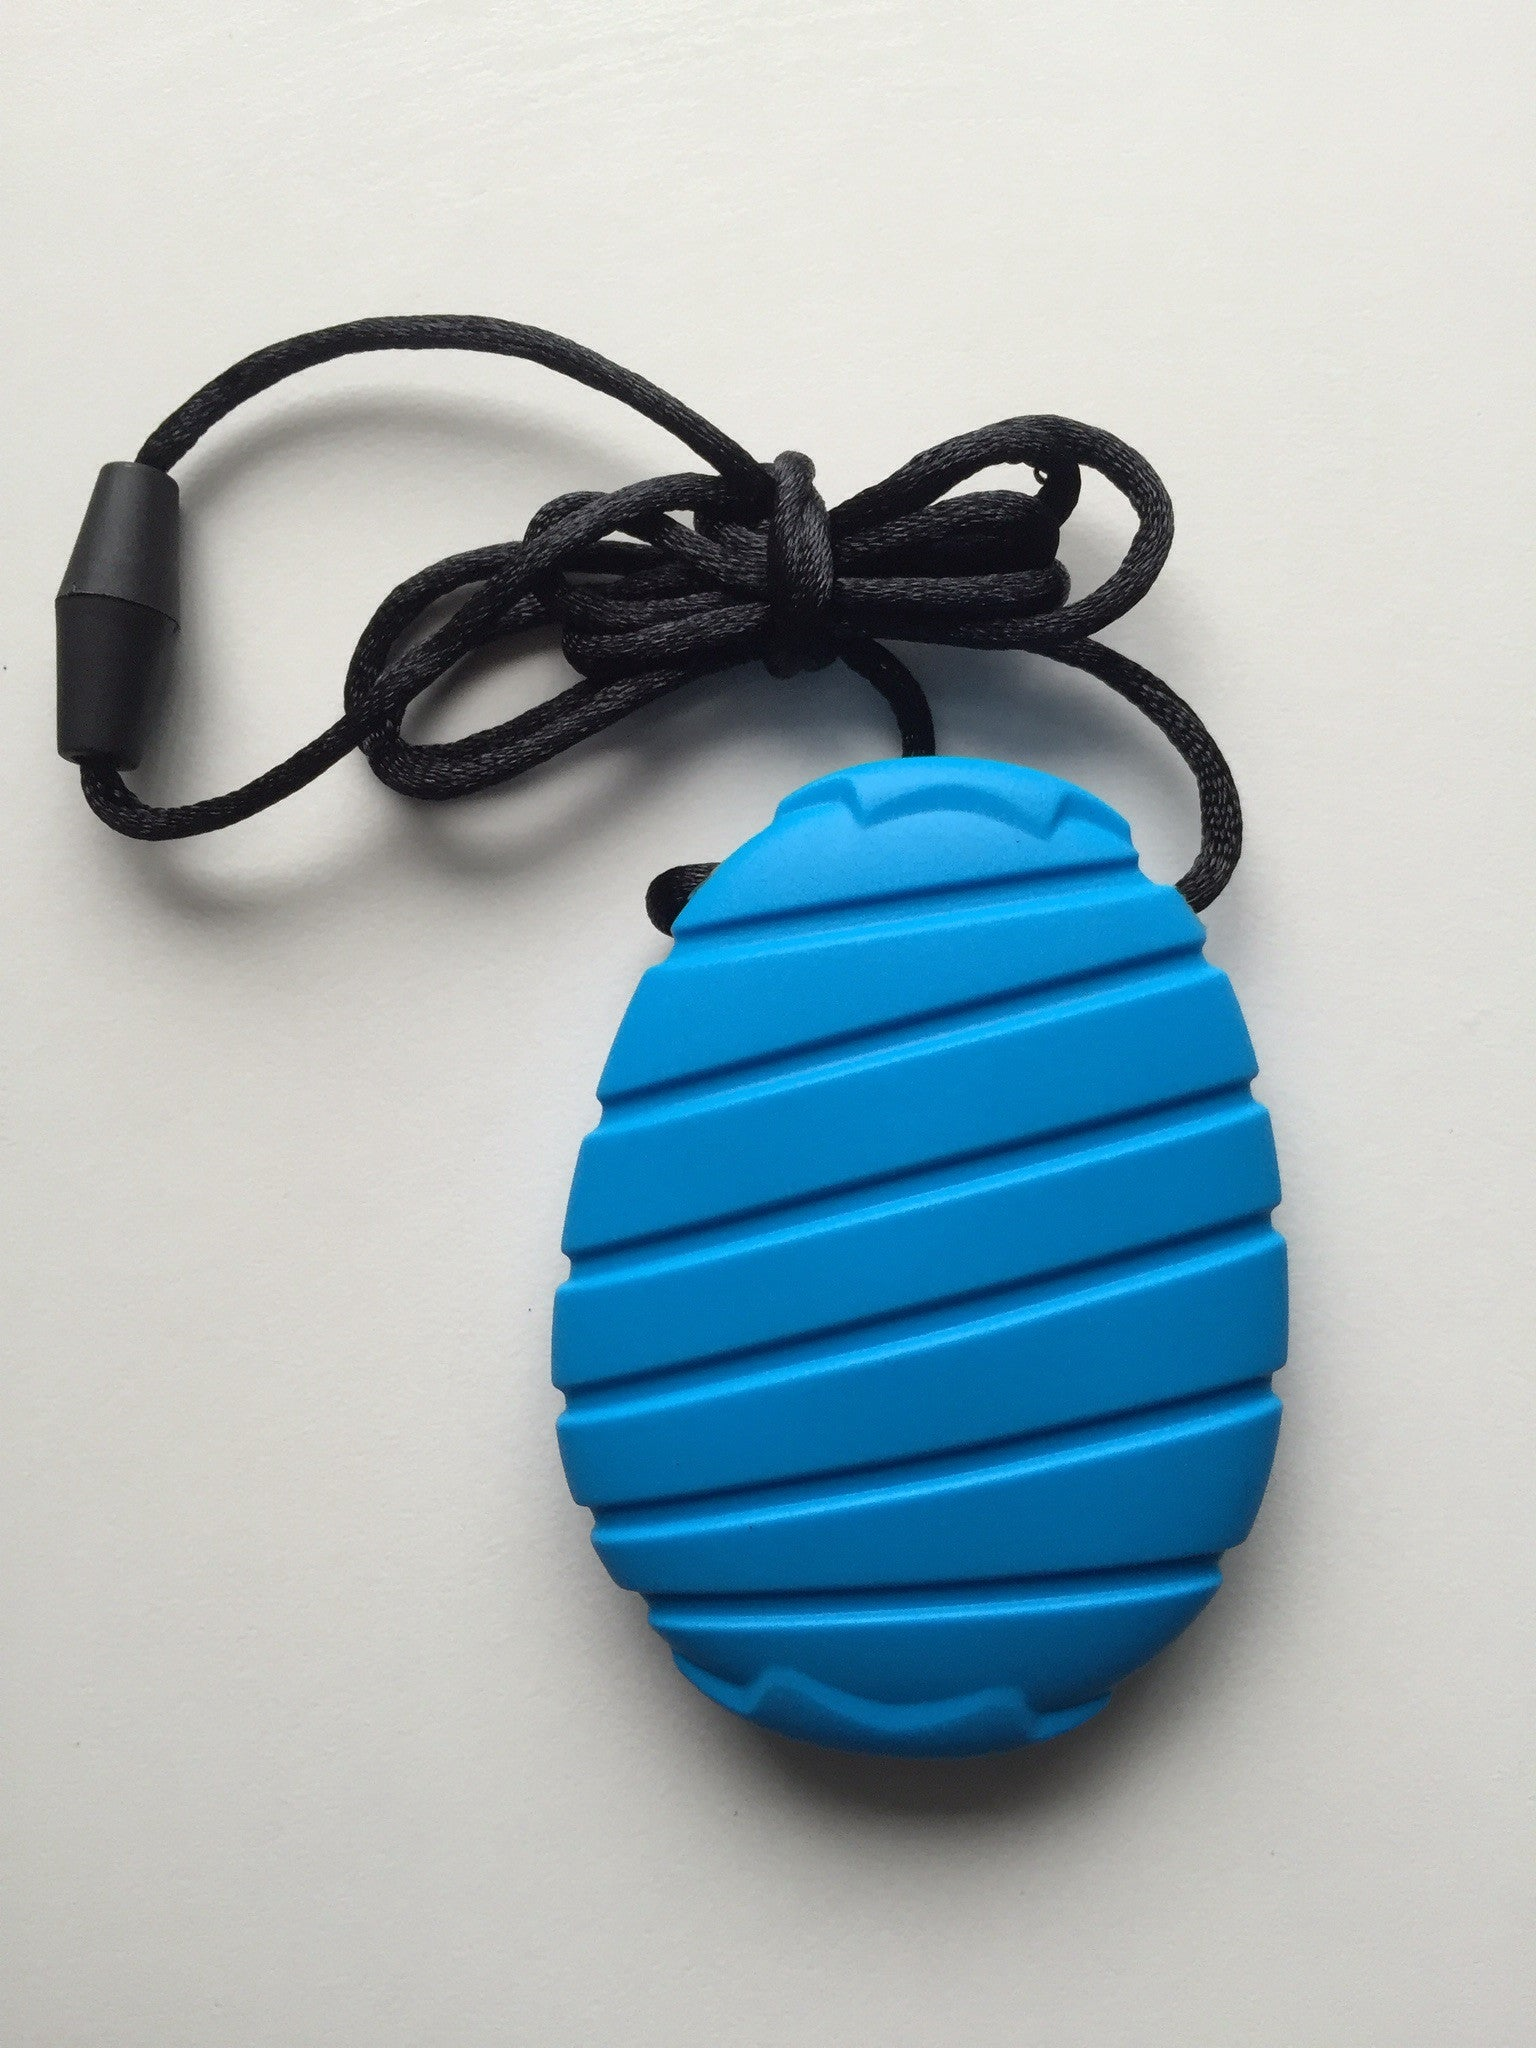 CHEW PENDANT Blue sensory autism chewing necklace ASD